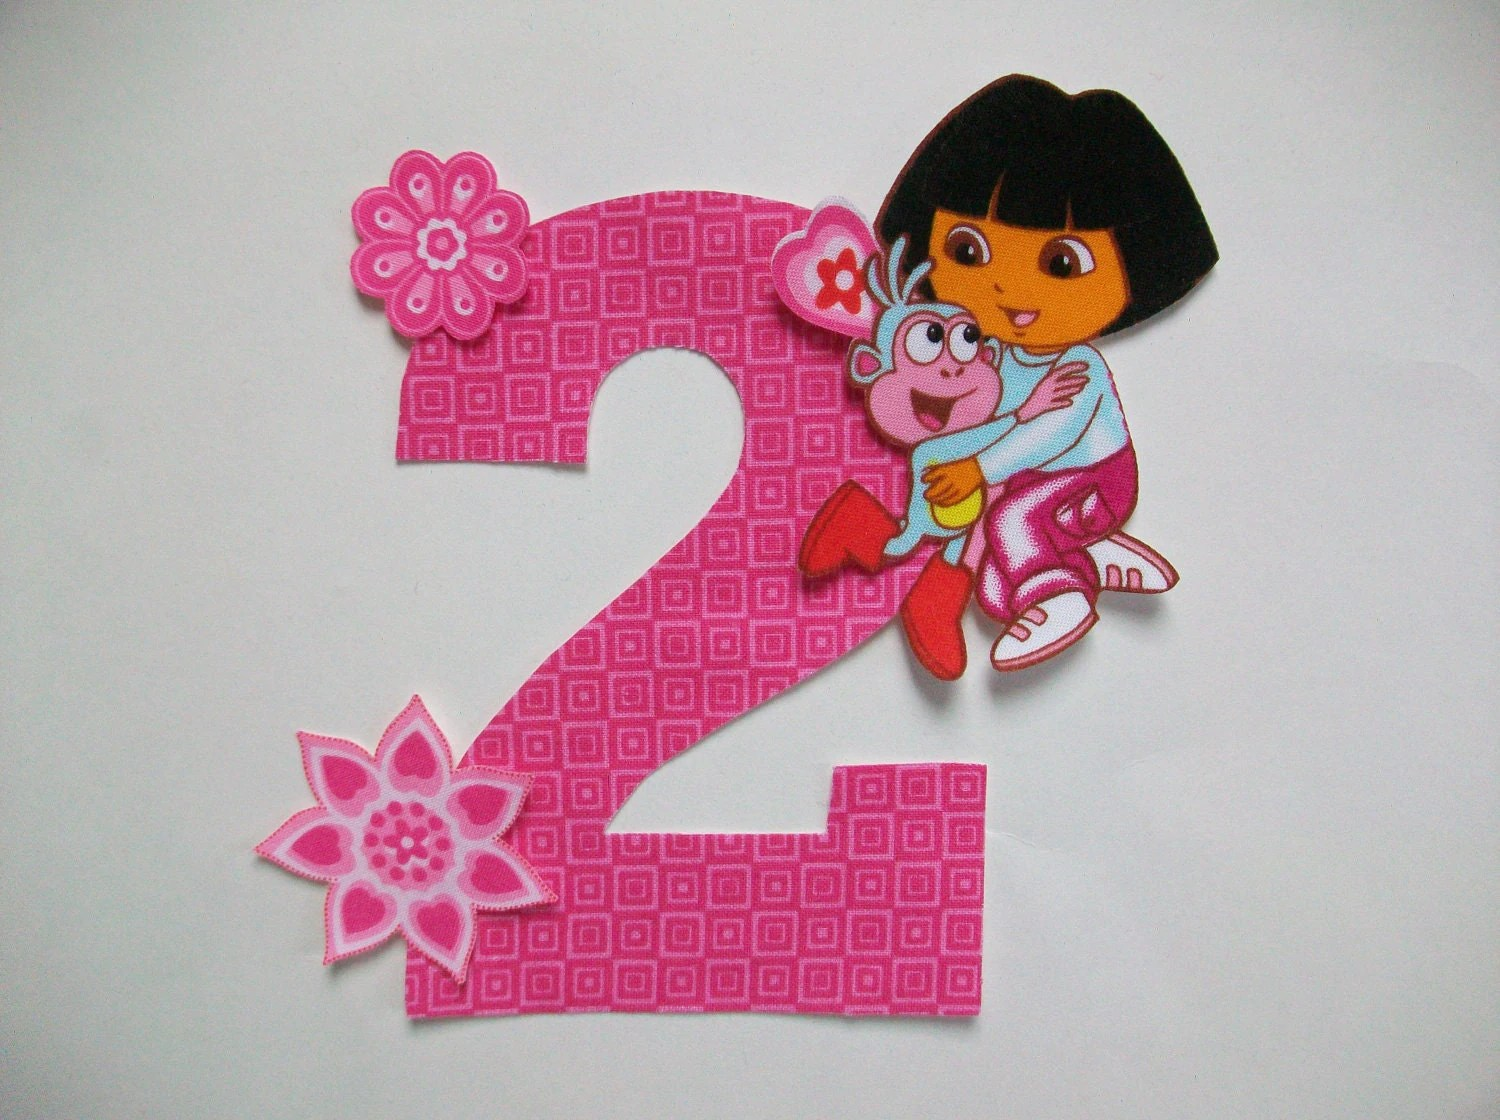 Diy No Sew Dora The Explorer Applique And Number Iron On